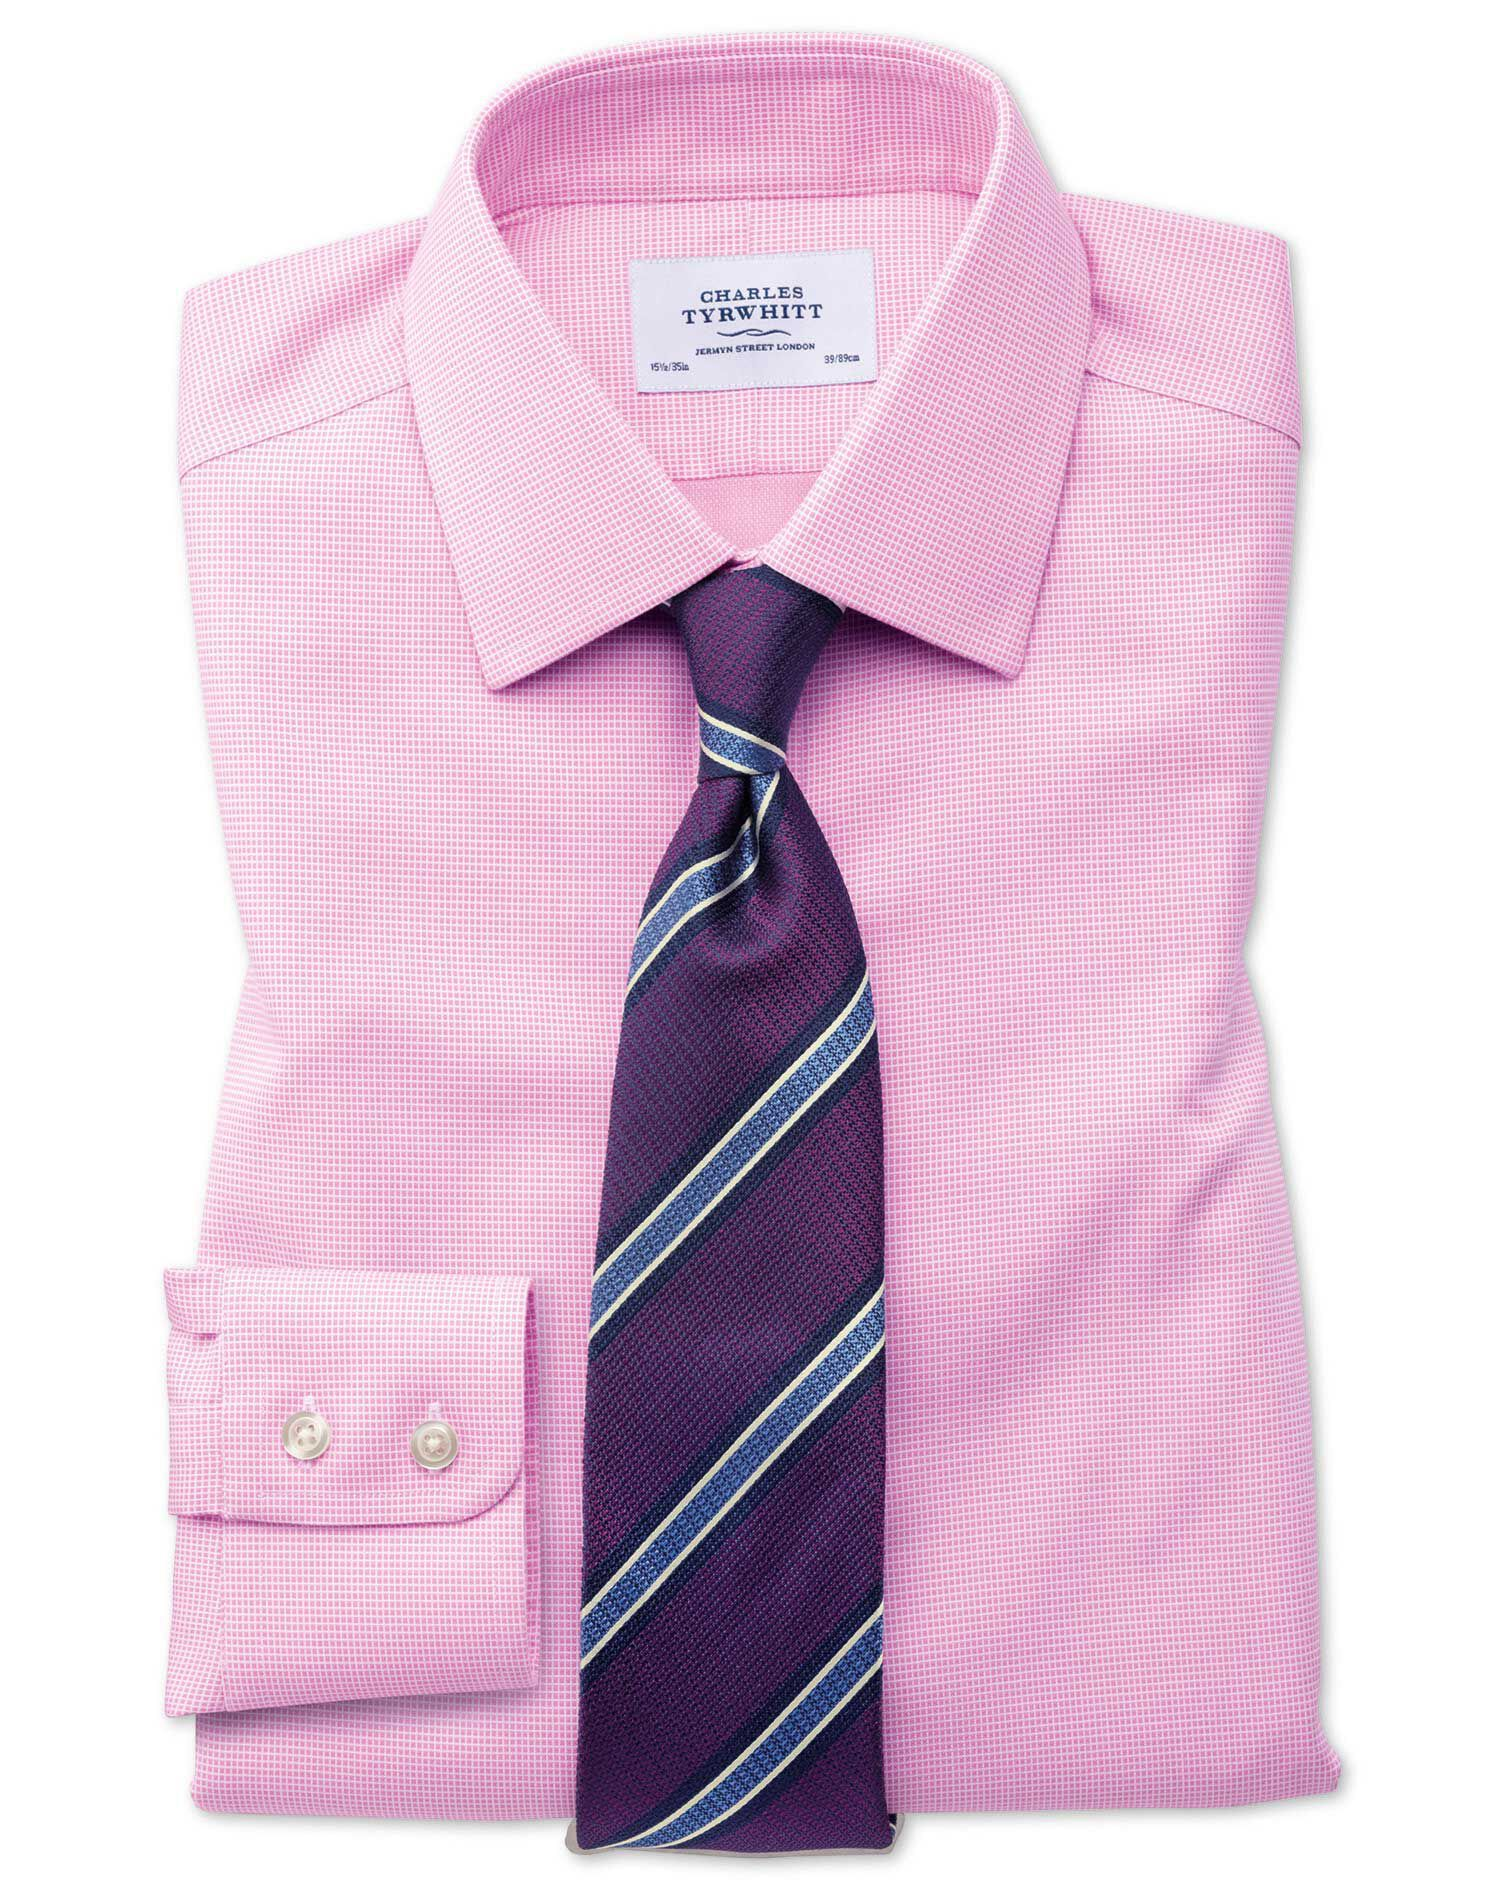 Slim Fit Non-Iron Square Weave Pink Cotton Formal Shirt Double Cuff Size 16/35 by Charles Tyrwhitt